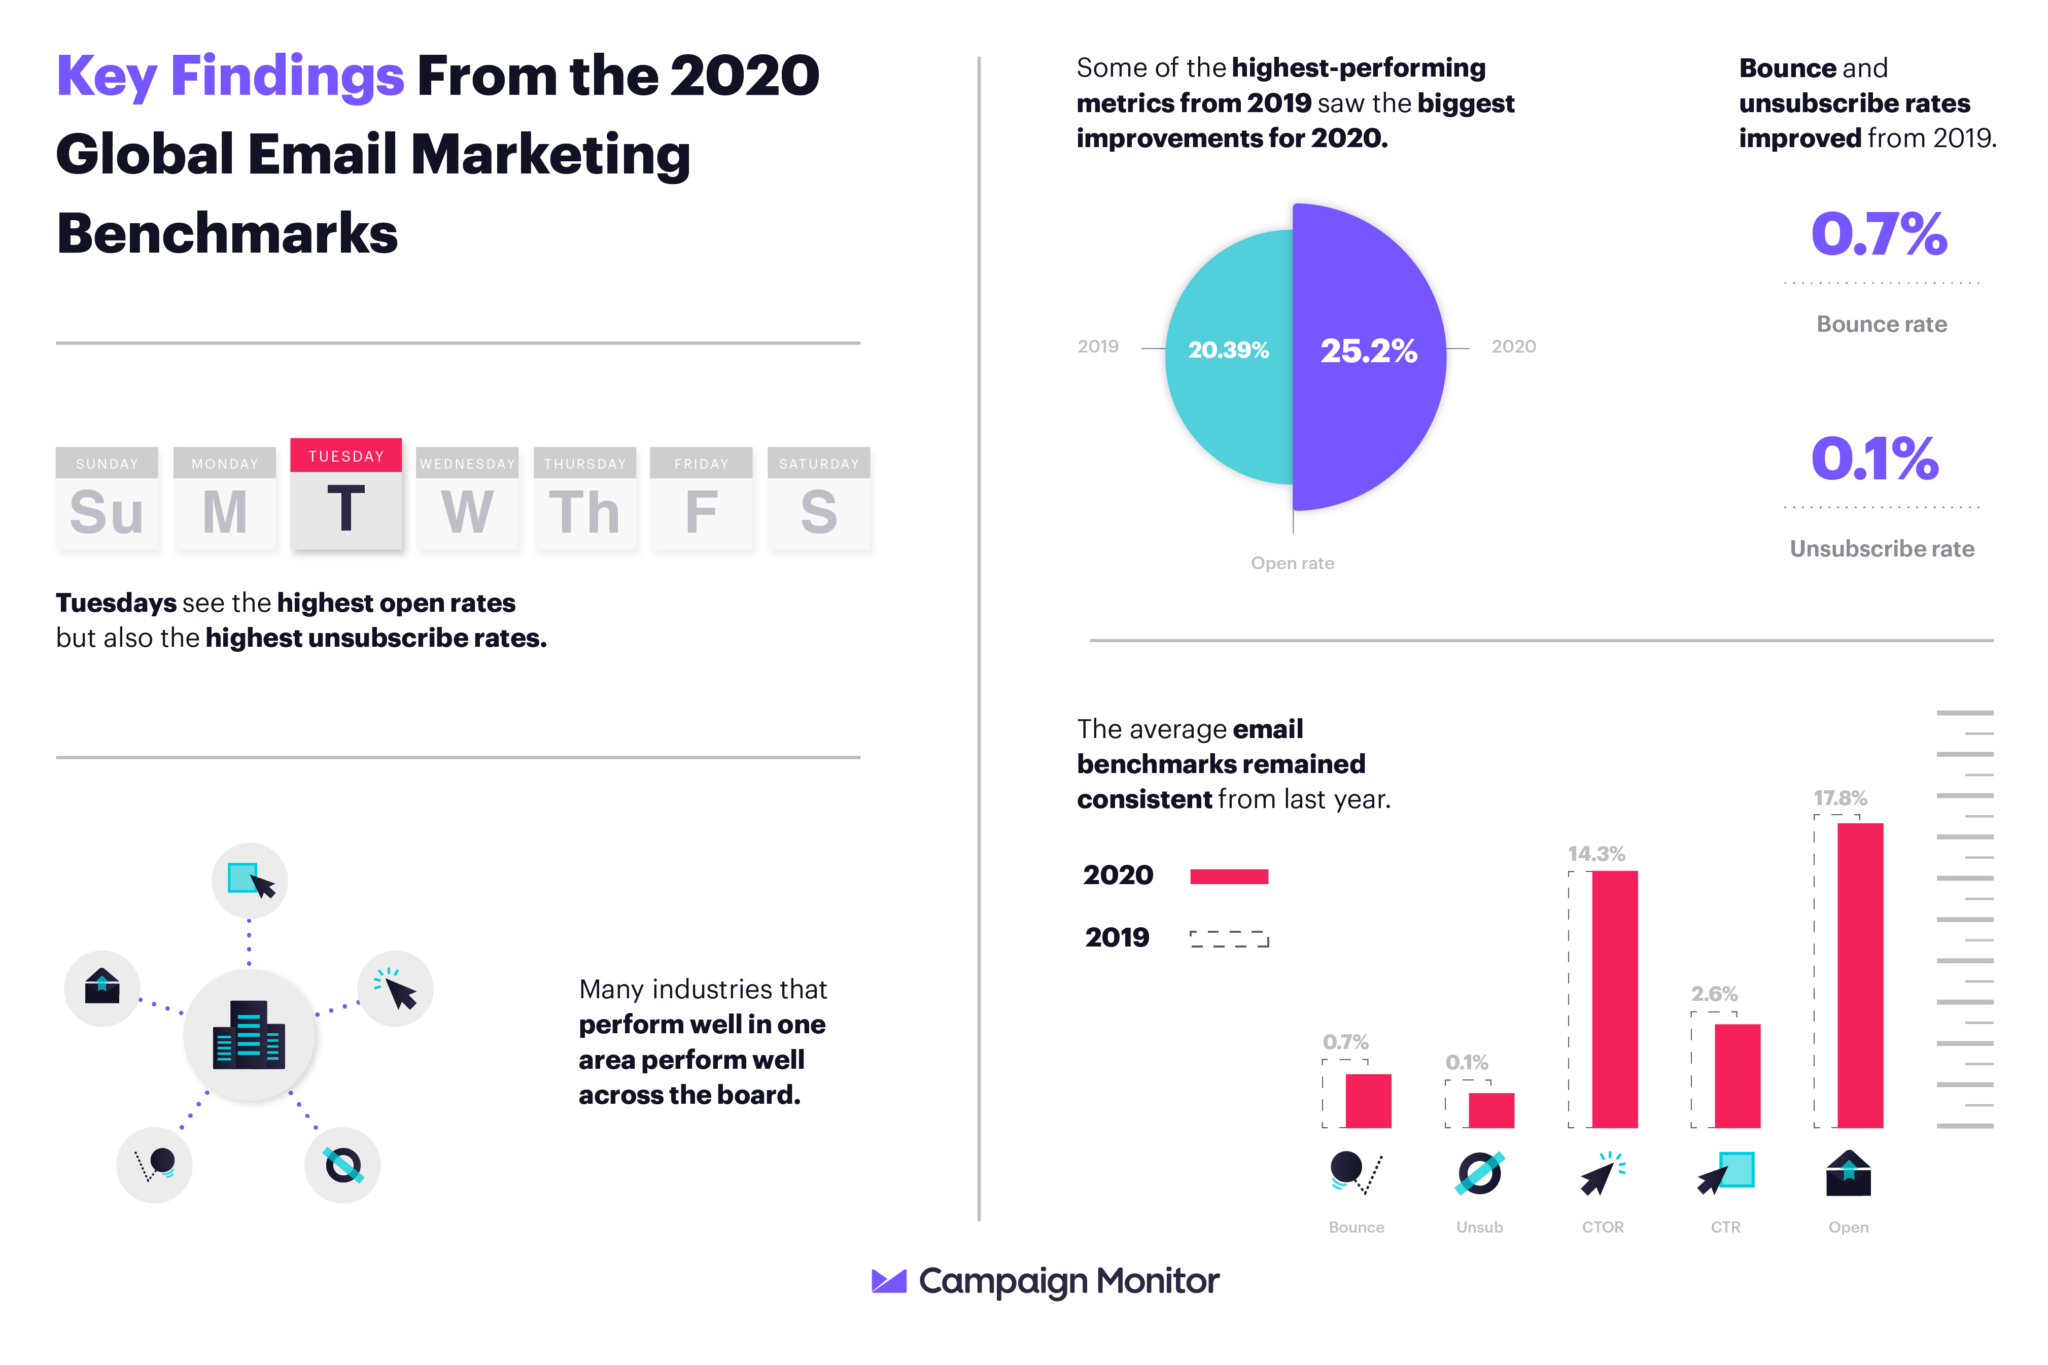 Email Marketing Benchmarks for 2020